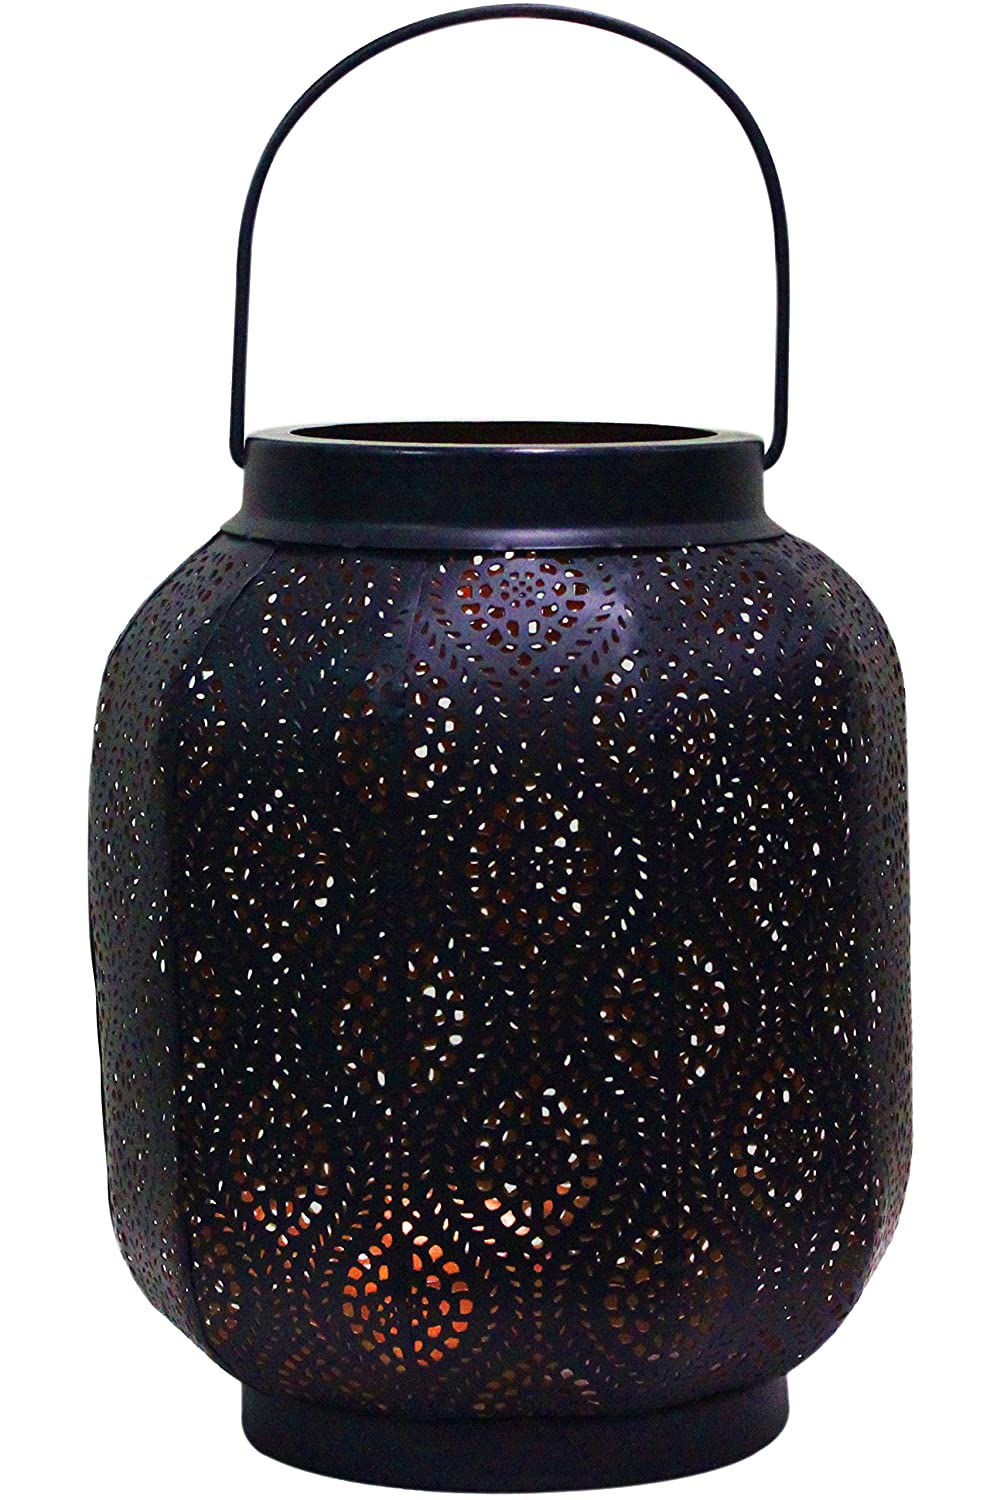 Moroccan Vintage Lantern Lights Lamp Baghira 26cm Black Large Arabian Indoor Candle Tea Light Holders as Indian Party Home Decor Oriental Garden Outdoor Hanging Lanterns for Candles as Decorations